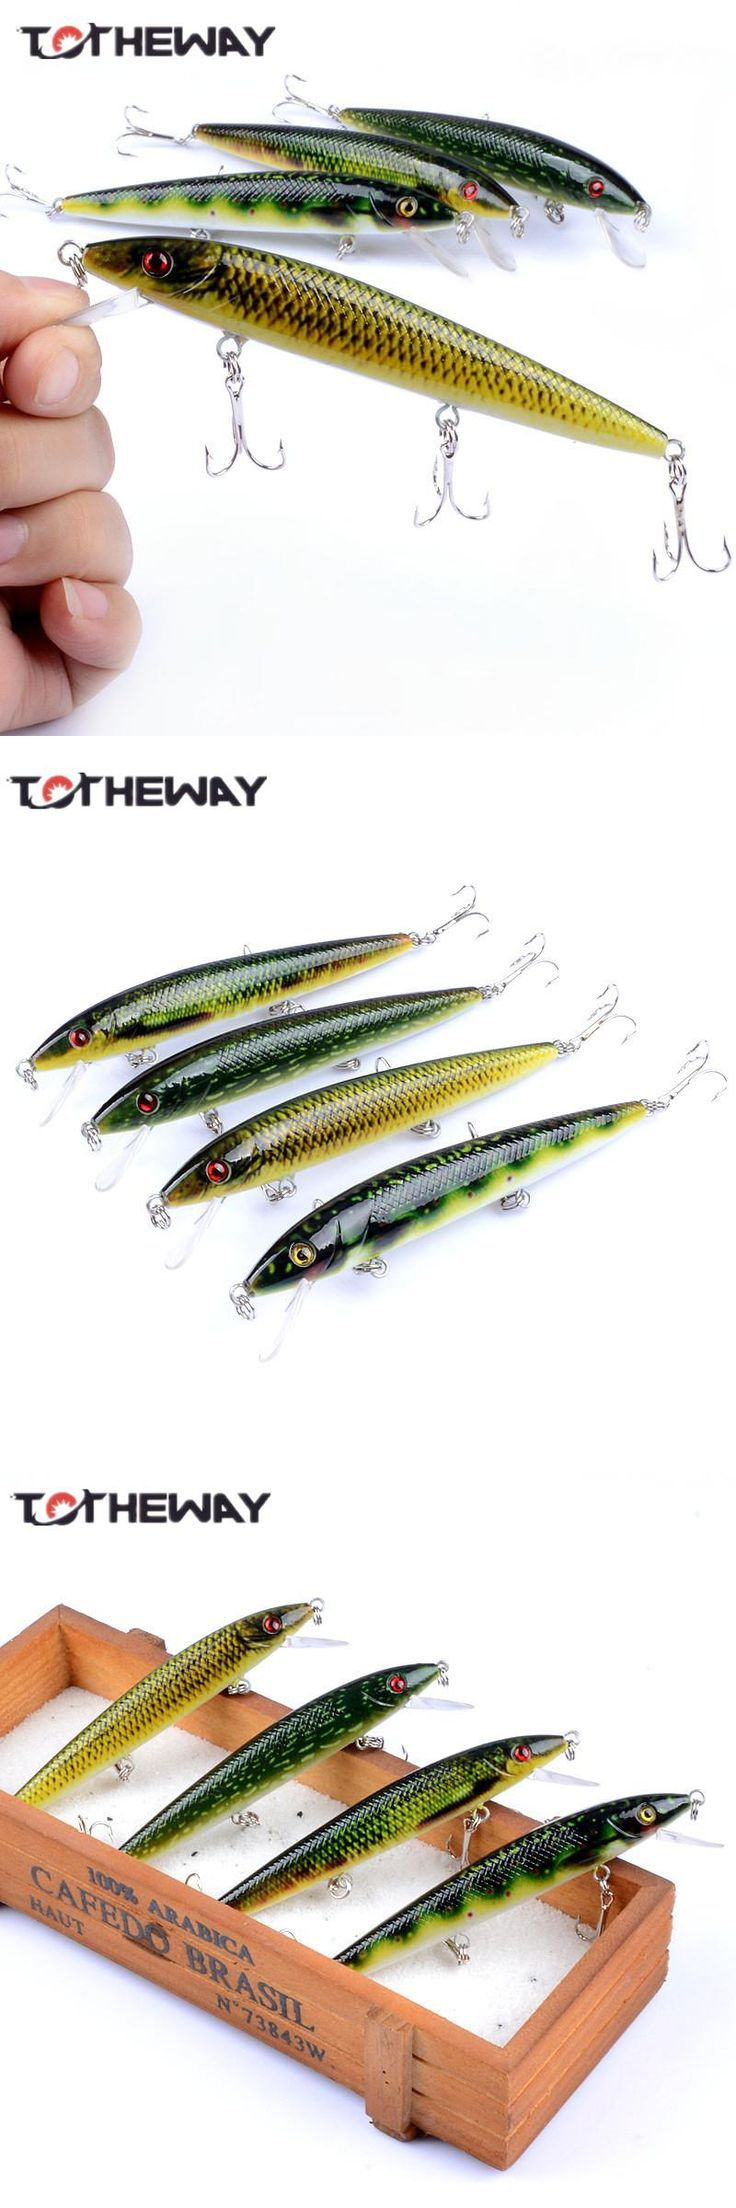 [Visit to Buy] 1PCS Lifelike 13.7g/12cm Minow Wobblers Hard Fishing Tackle Swim bait Crank Bait Bass Fishing Lures 4 Colors fishing tackle #Advertisement